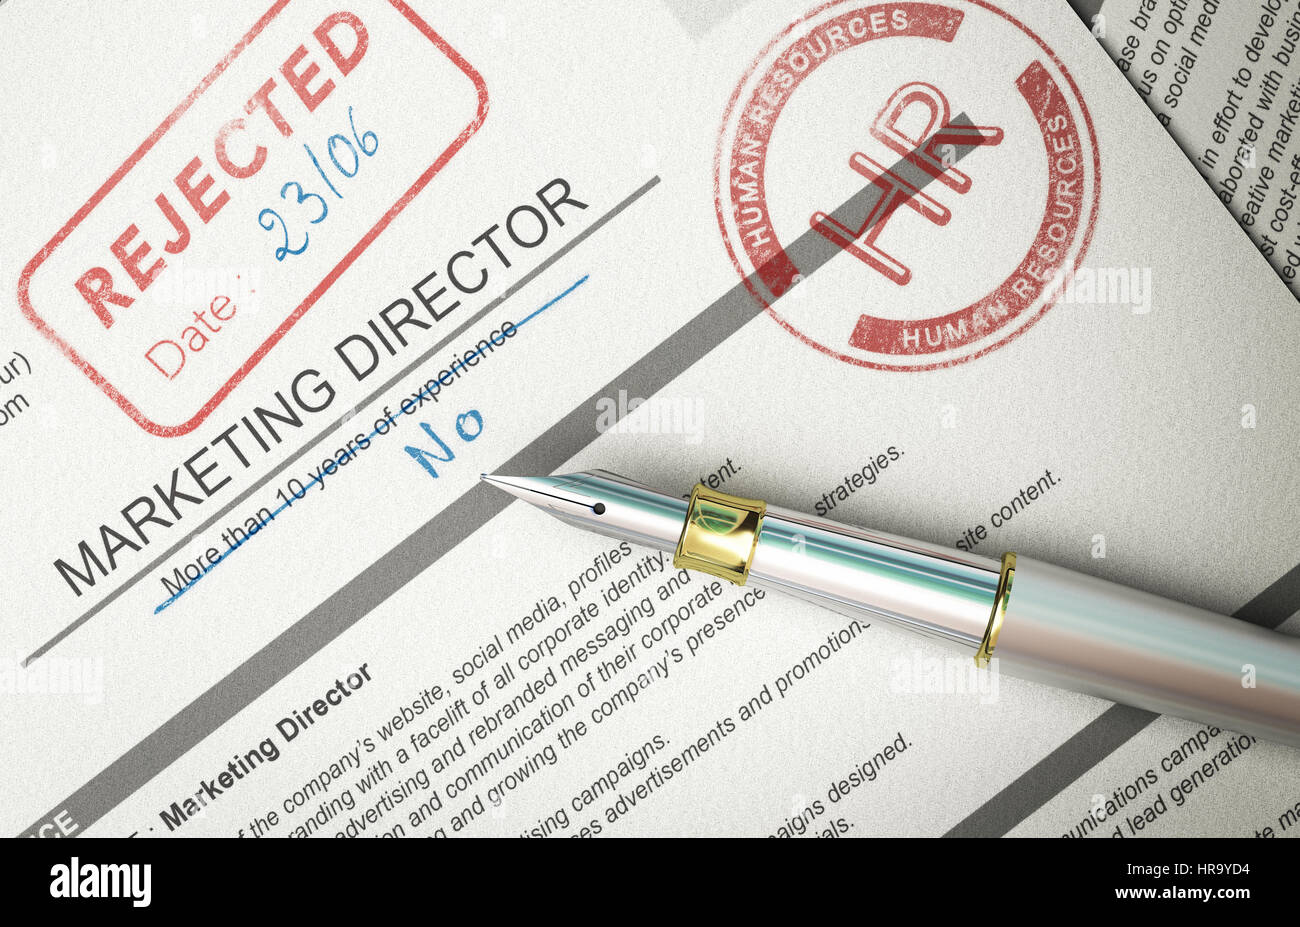 Resume with HR and rejected rubber stamps and handwritten comments. Concept of fake resume. 3D illustration. - Stock Image